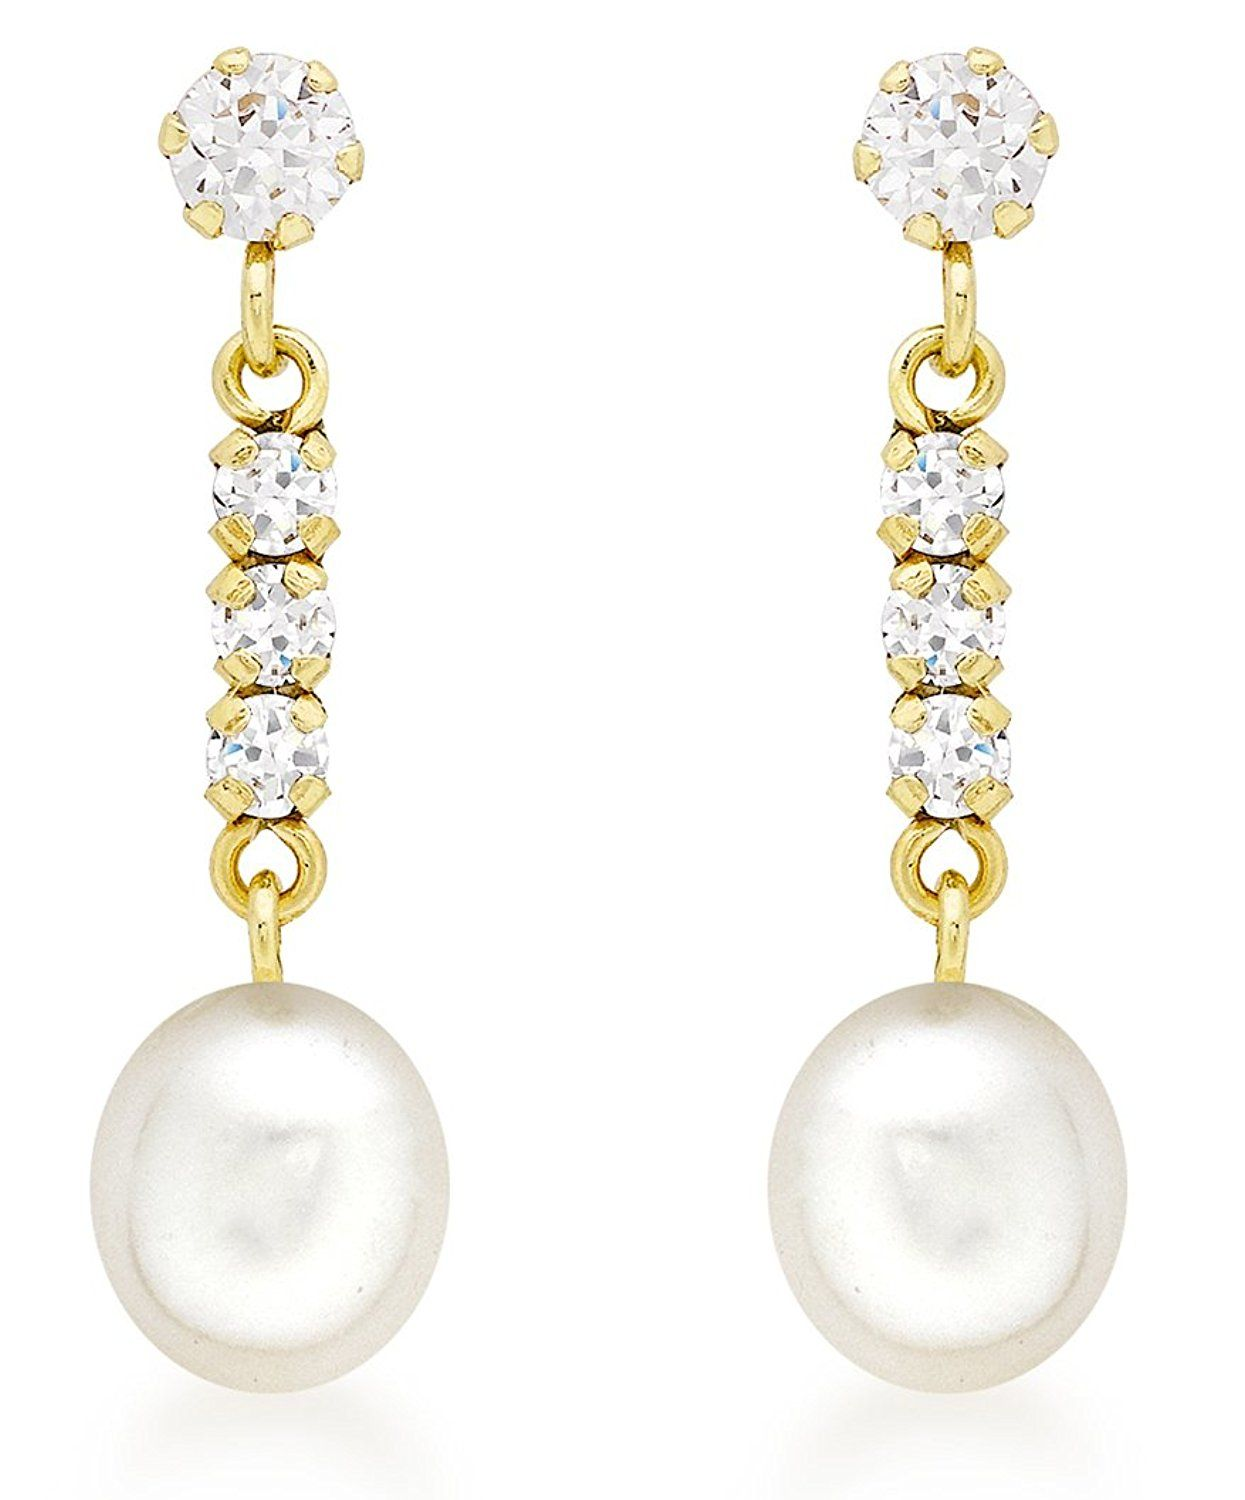 Carissima Gold 9ct White Gold Cubic Zirconia Cluster and Pearl Drop Earrings DGdIS0ou